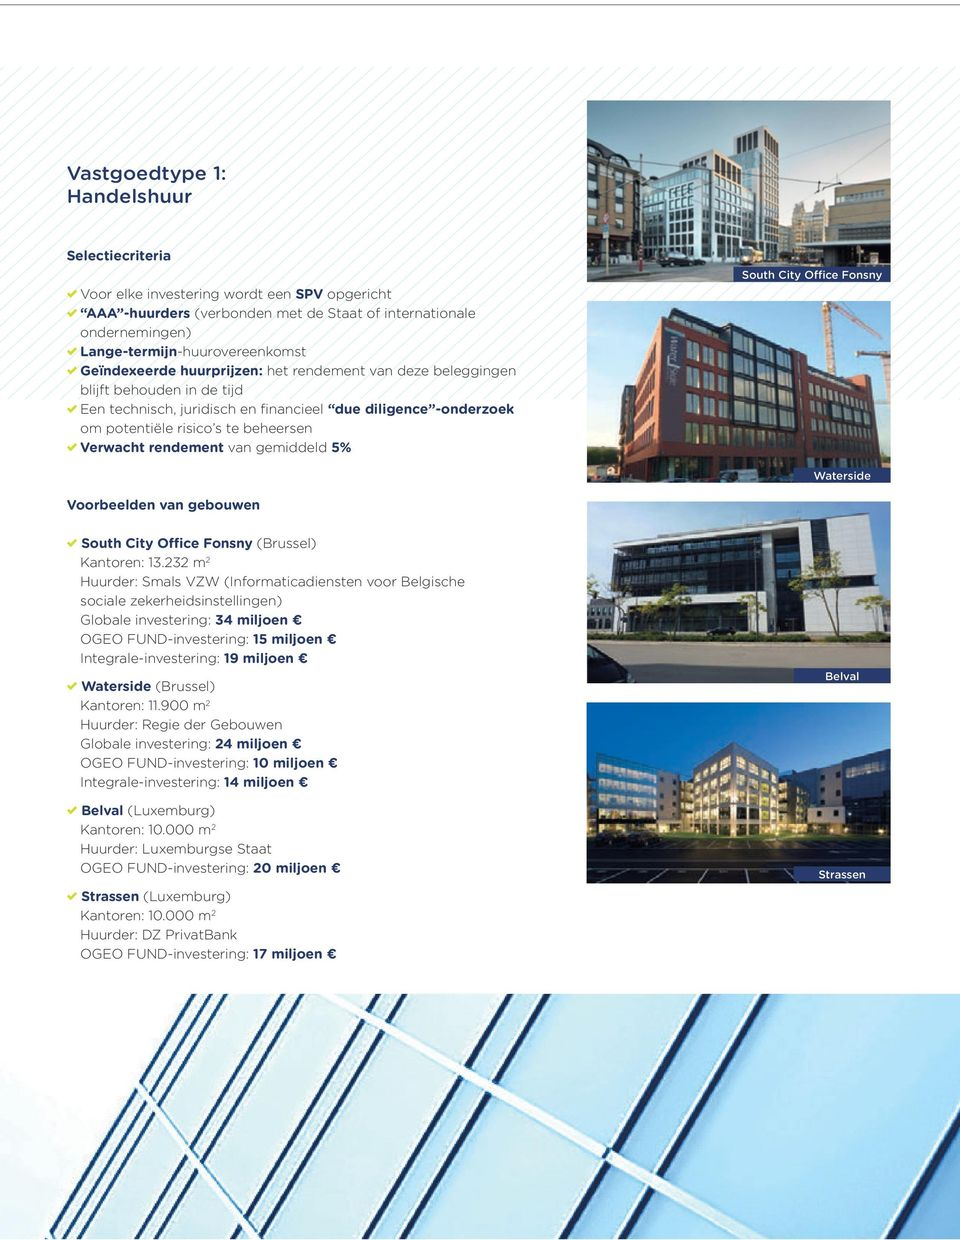 rendement van gemiddeld 5% South City Office Fonsny Waterside Voorbeelden van gebouwen South City Office Fonsny (Brussel) Kantoren: 13.